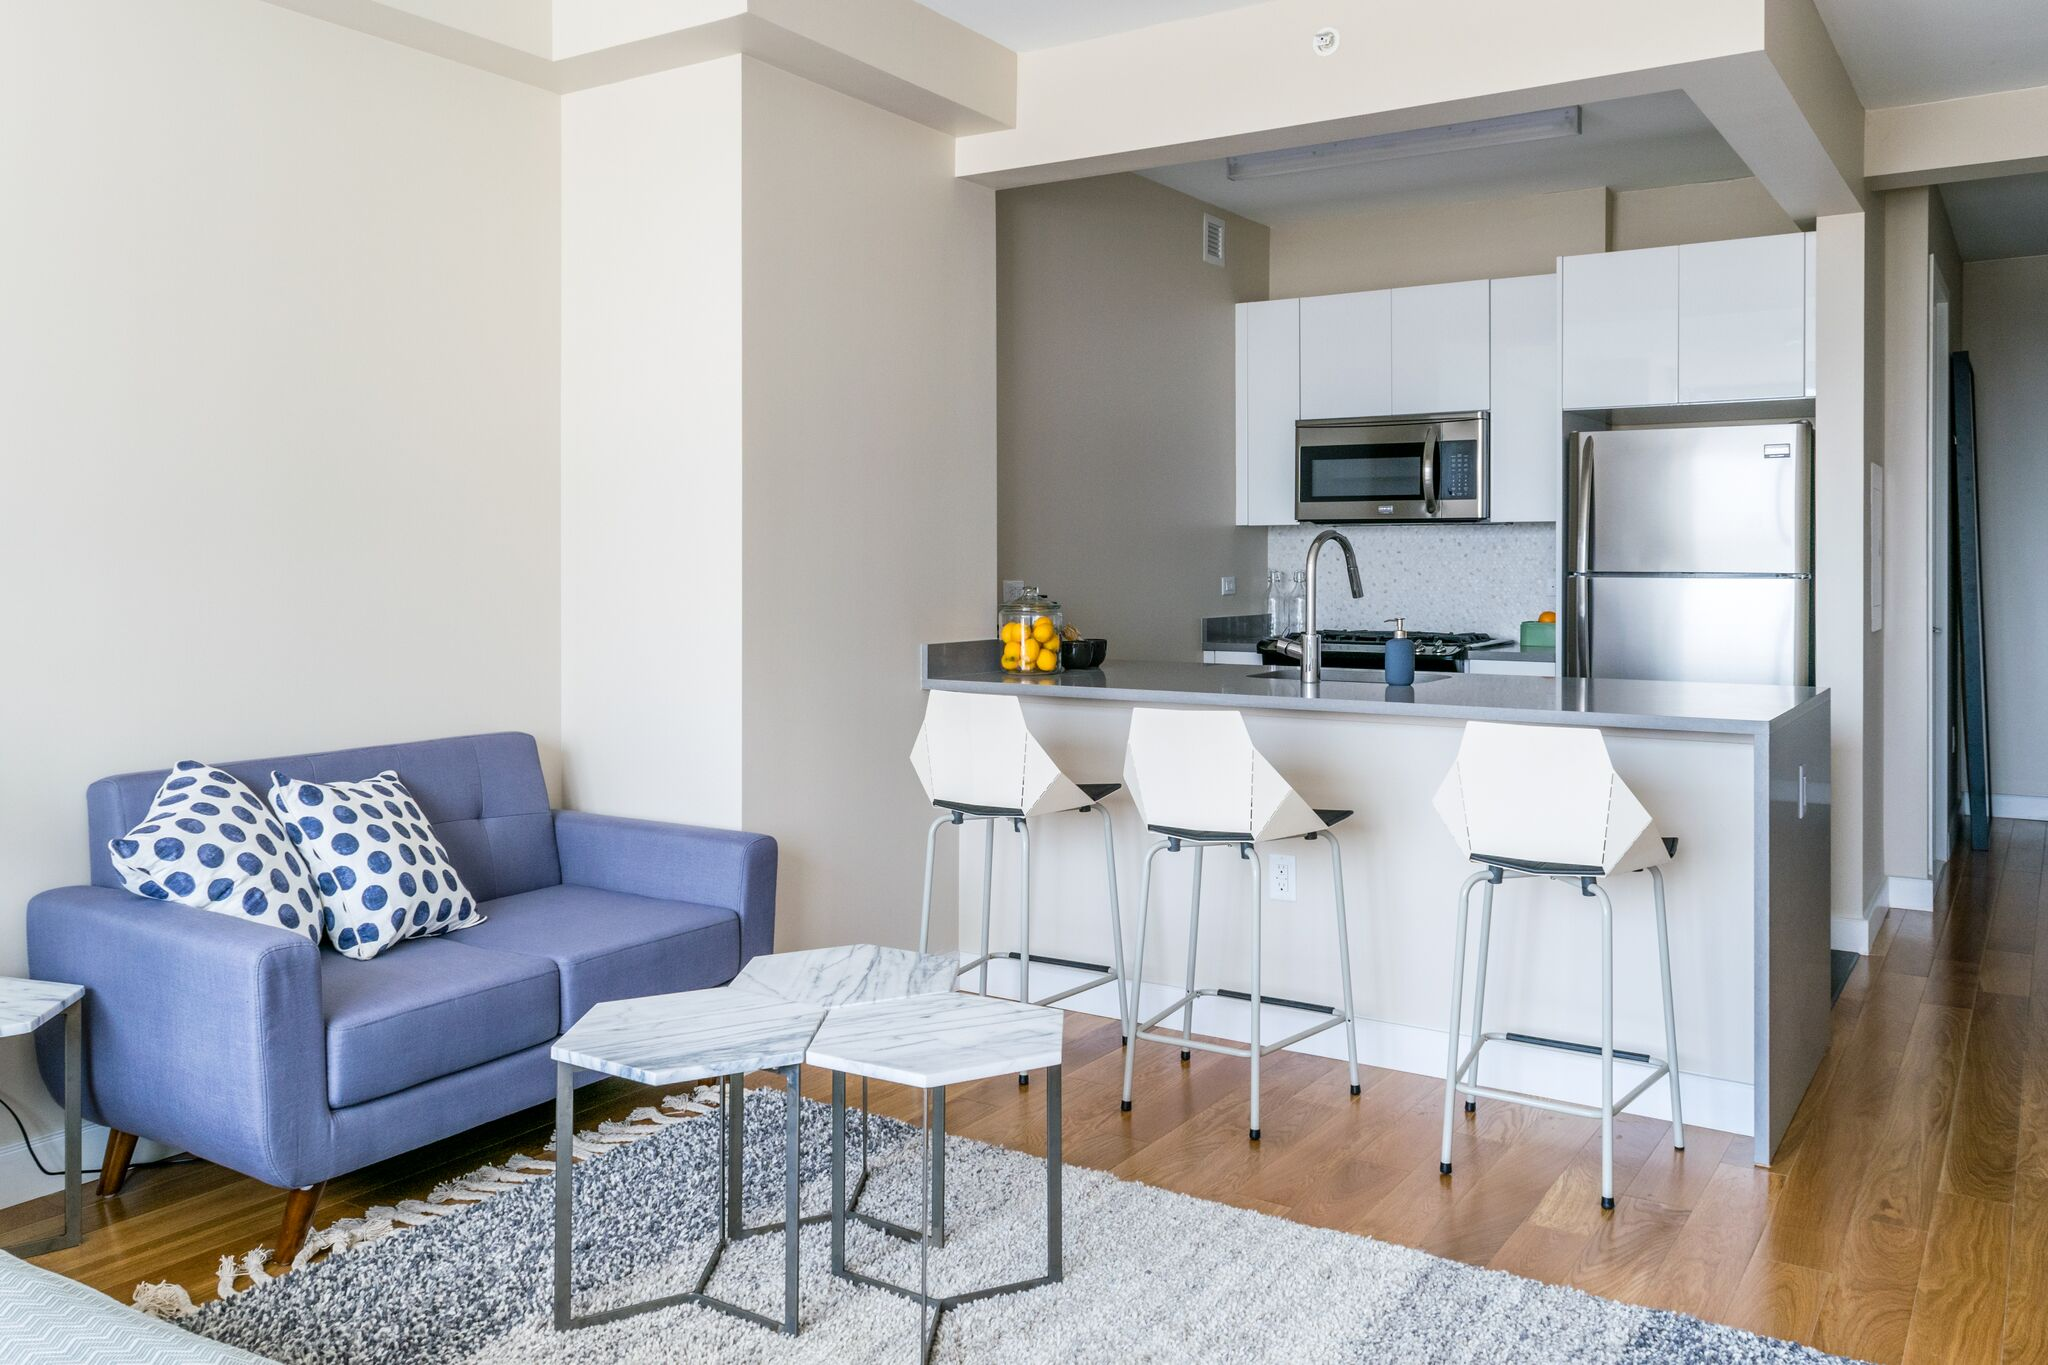 Average apartments interior - The Handel Architects Designed Rental Comes With A Co Working Space An Elevated Park Equipped With Barbecue Grills And Dining Areas A Lounge With A